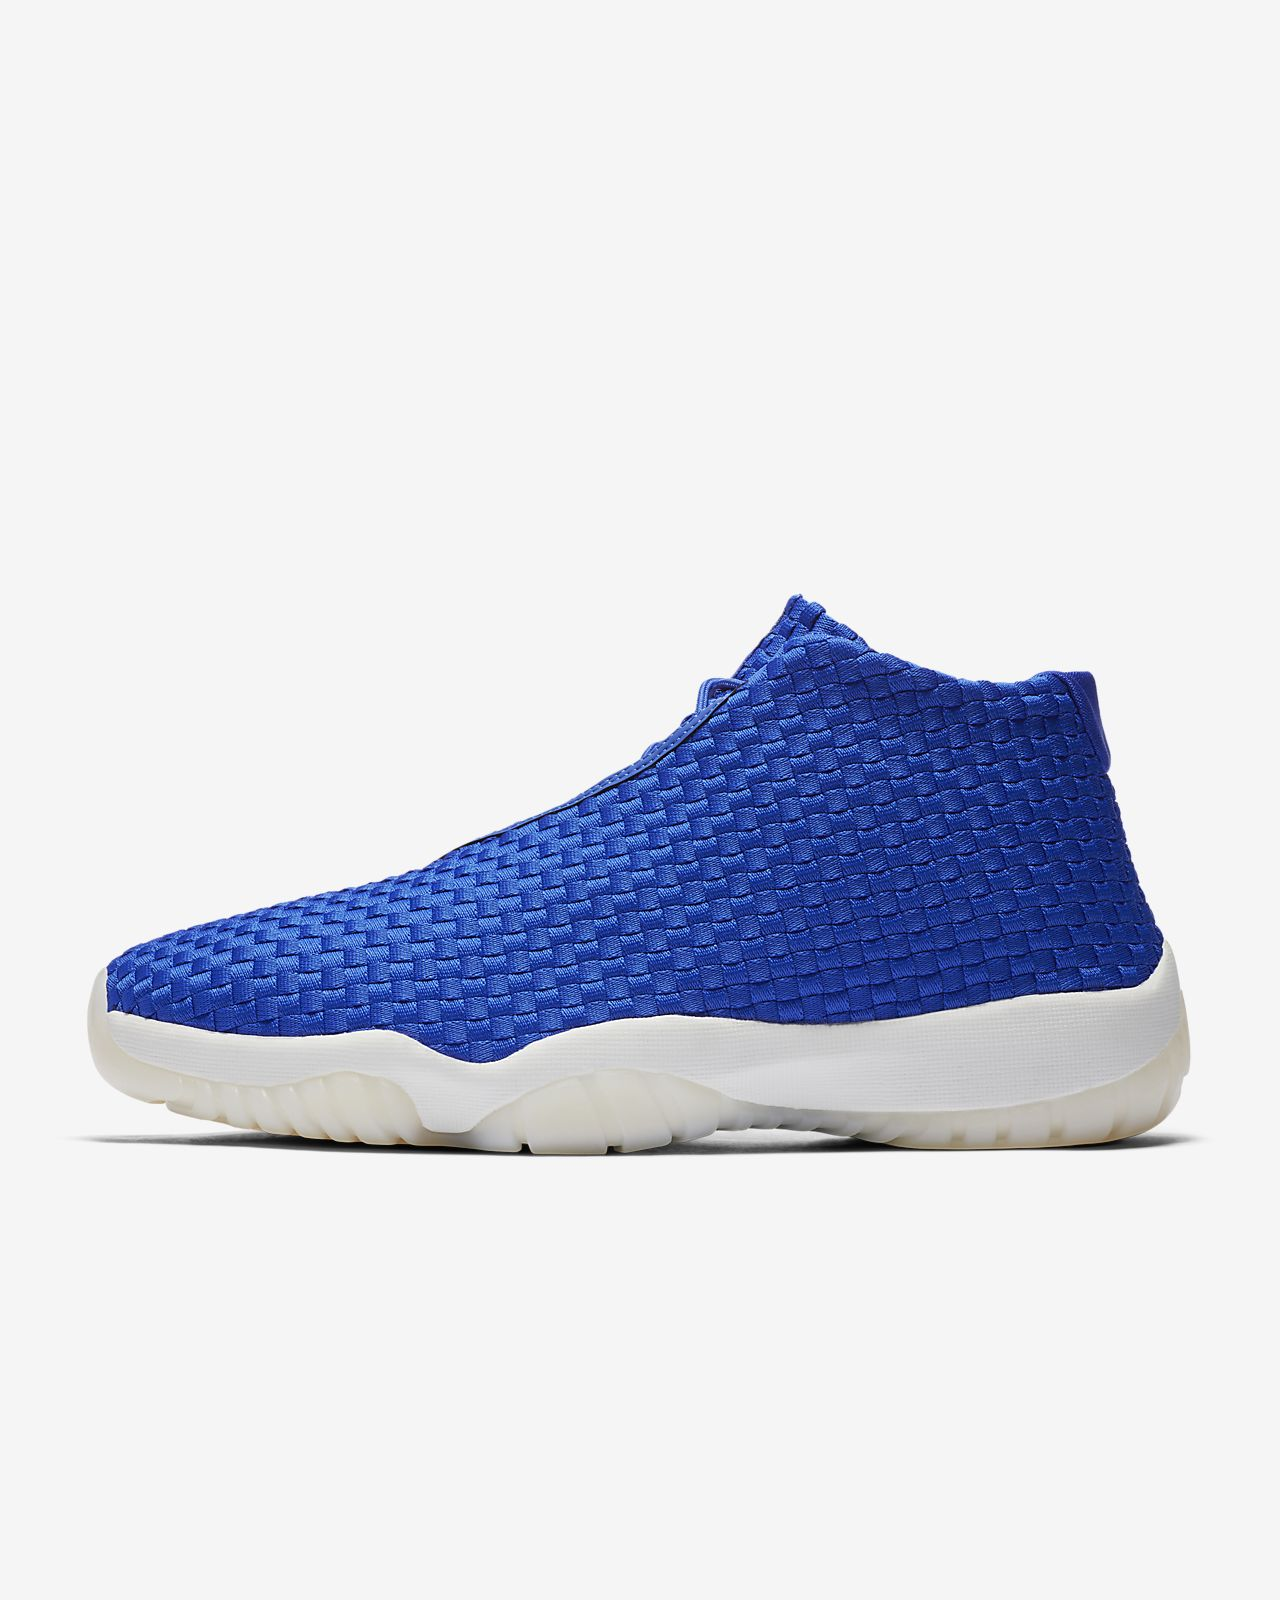 8d1c052bf6b5 Air Jordan Future Men s Shoe. Nike.com